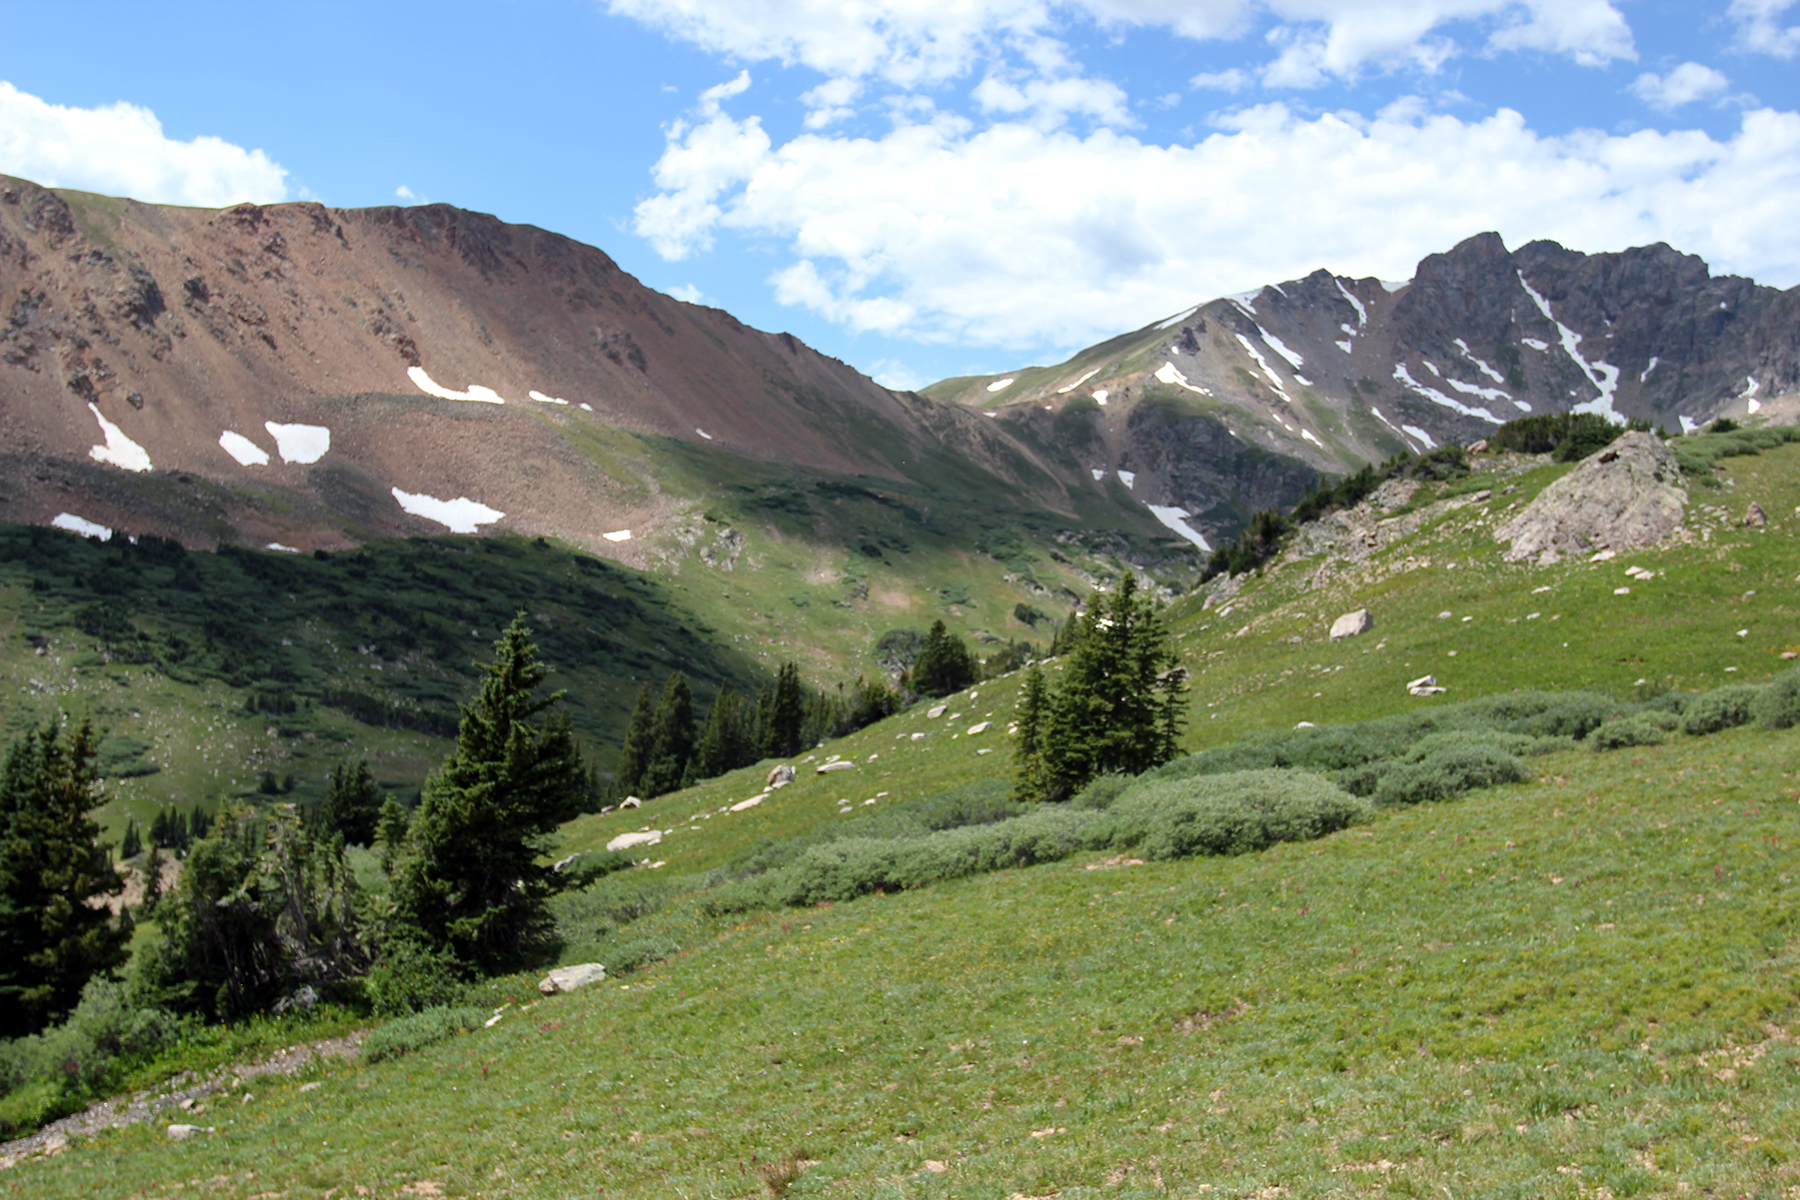 Camping & Hiking in Summit County, Colorado